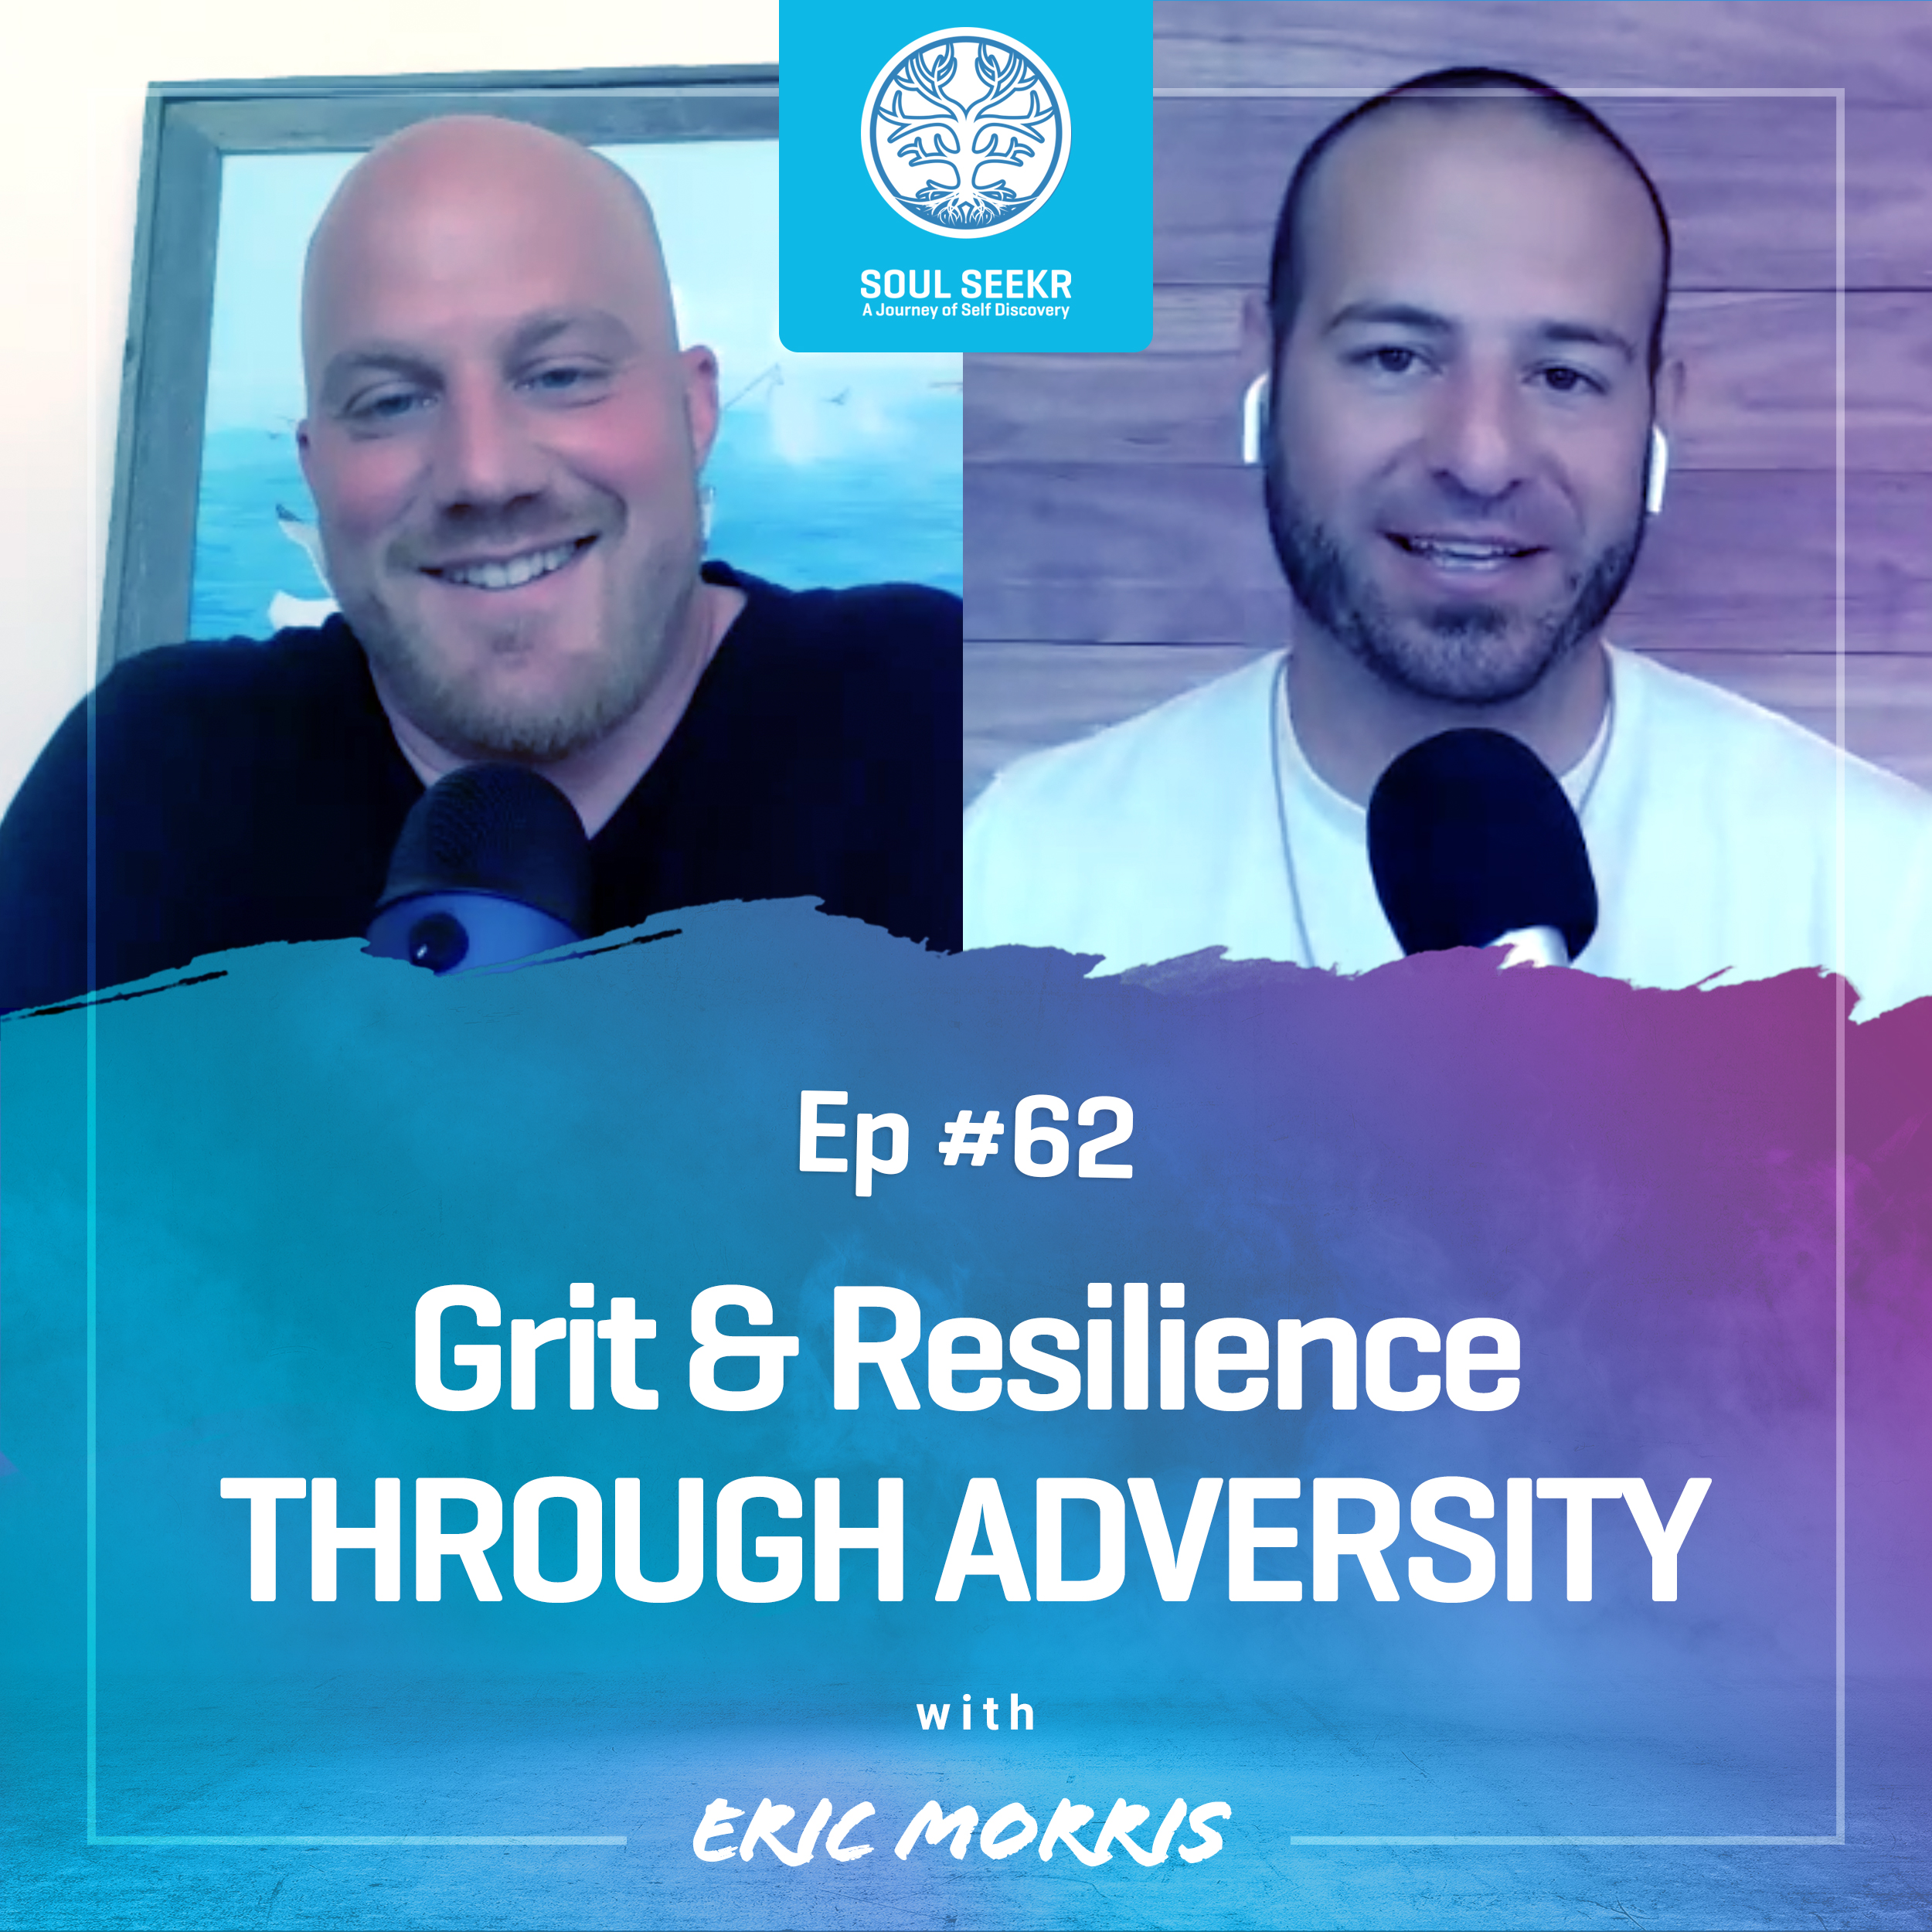 #62: Grit & Resilience Through Adversity with Eric Morris